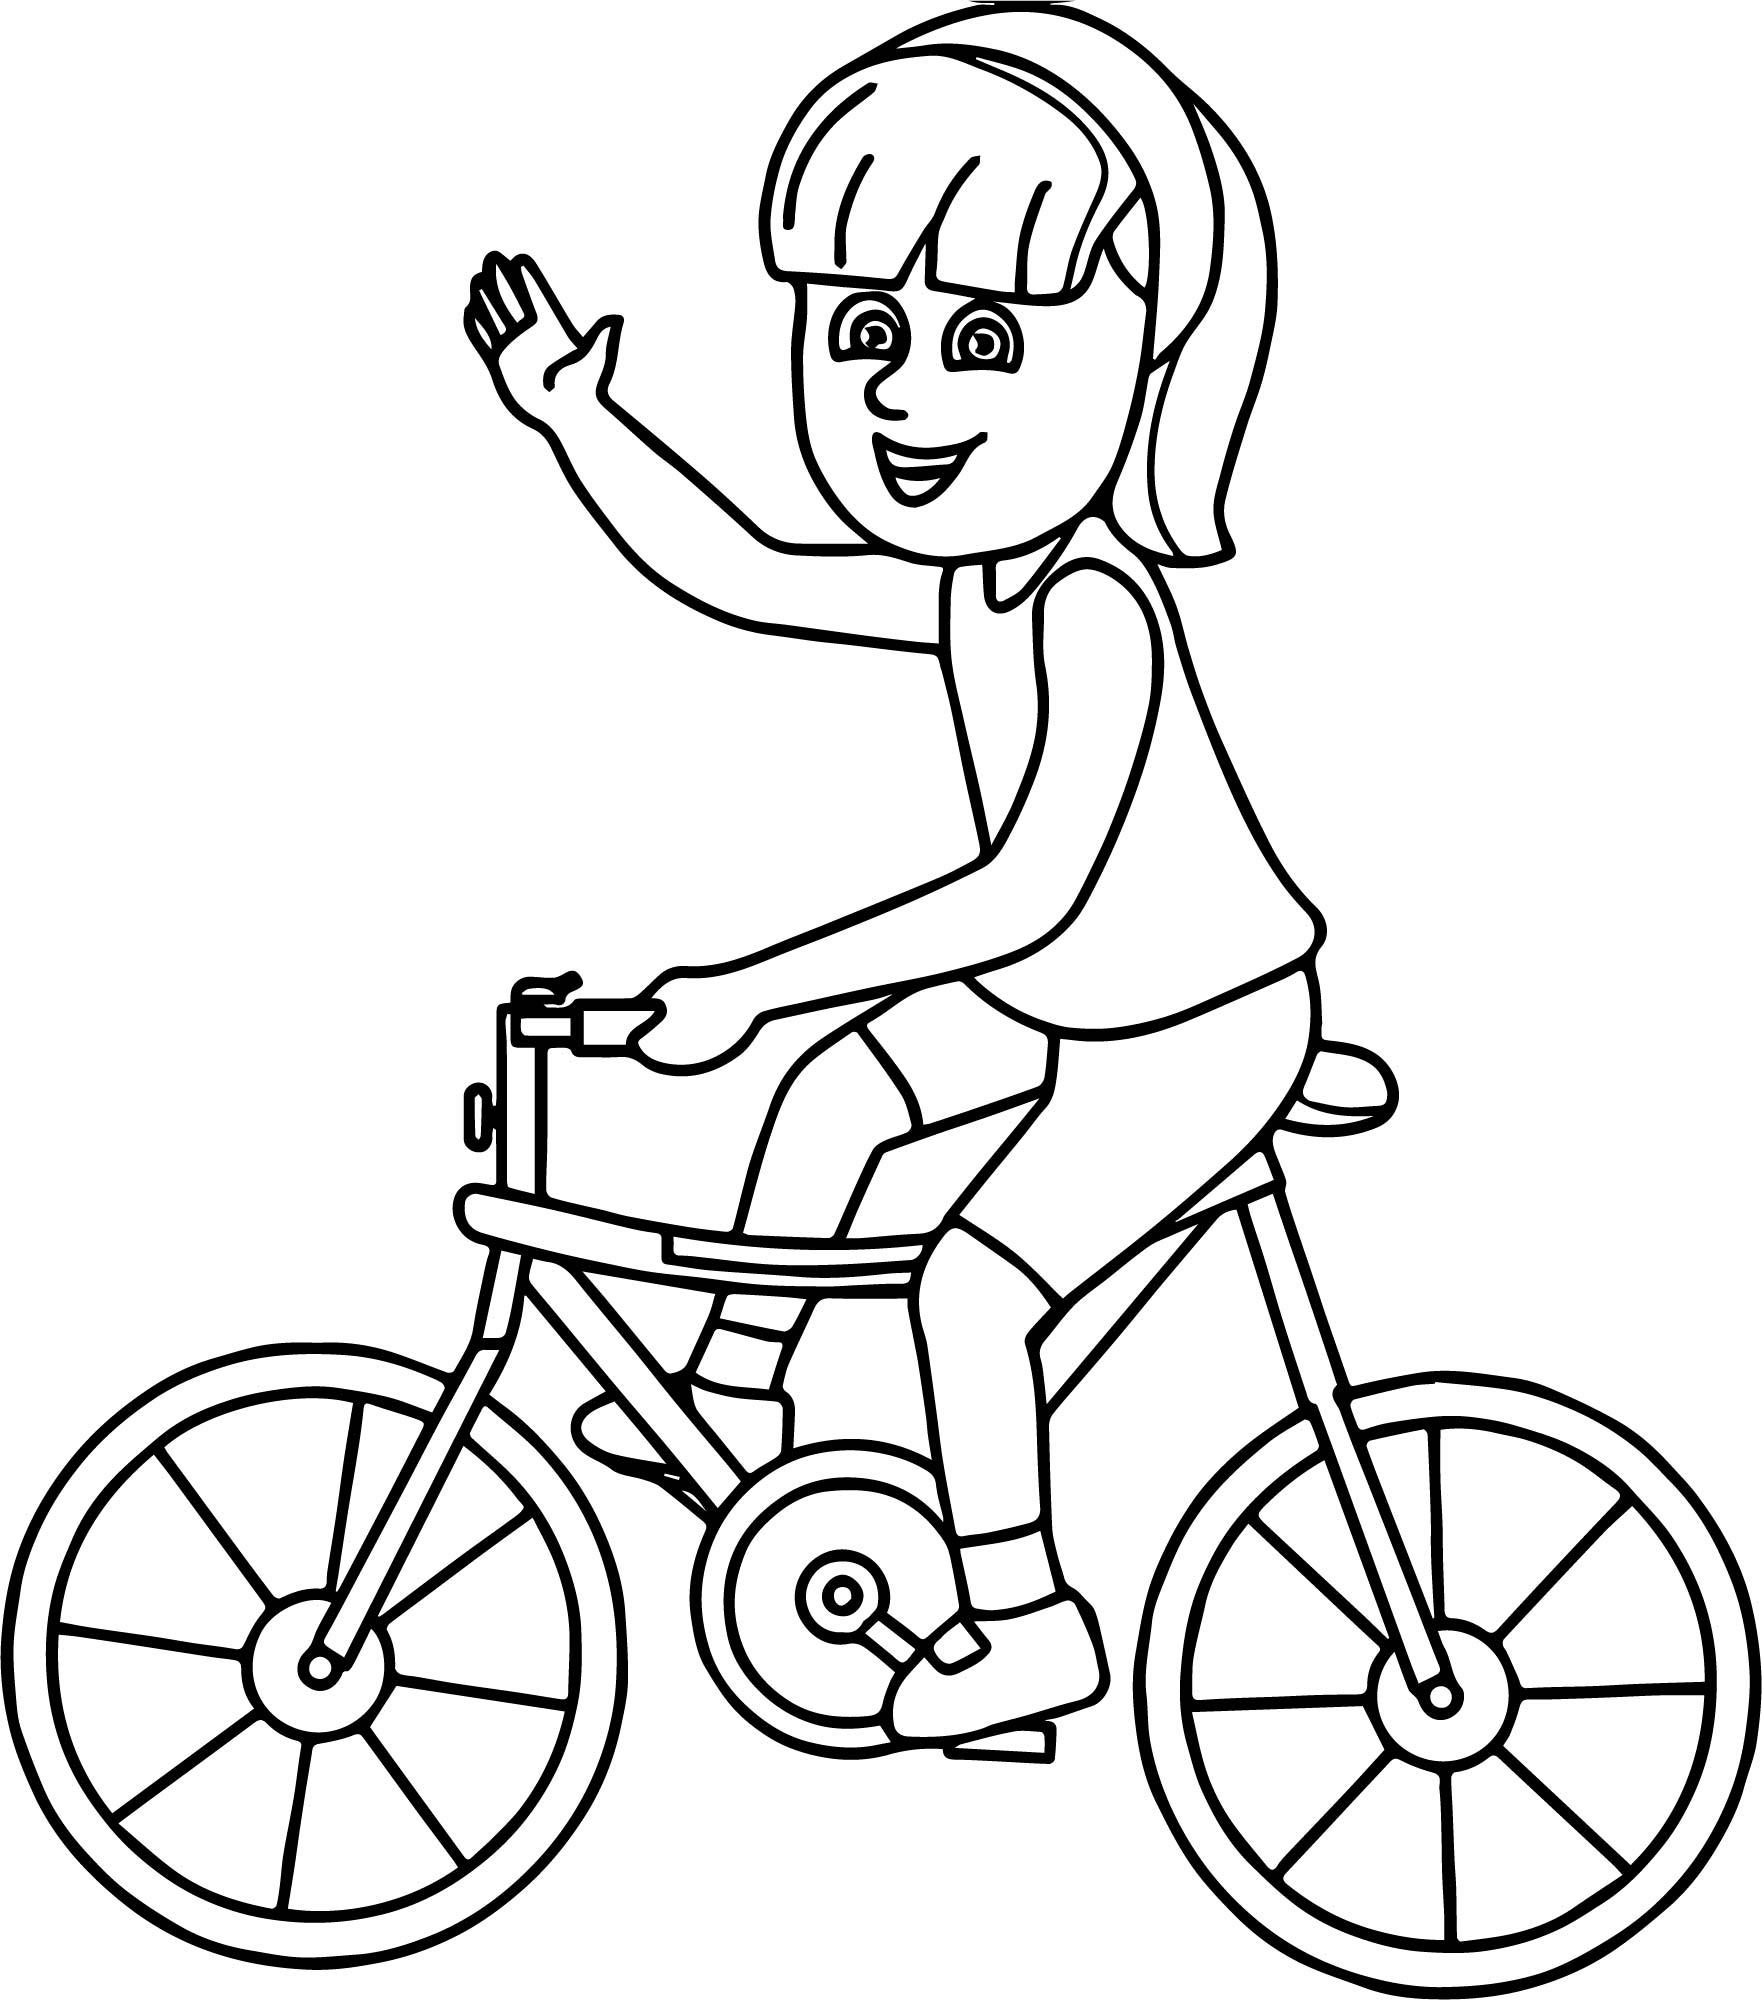 Riding Girl On Bicycle Coloring Page | Wecoloringpage